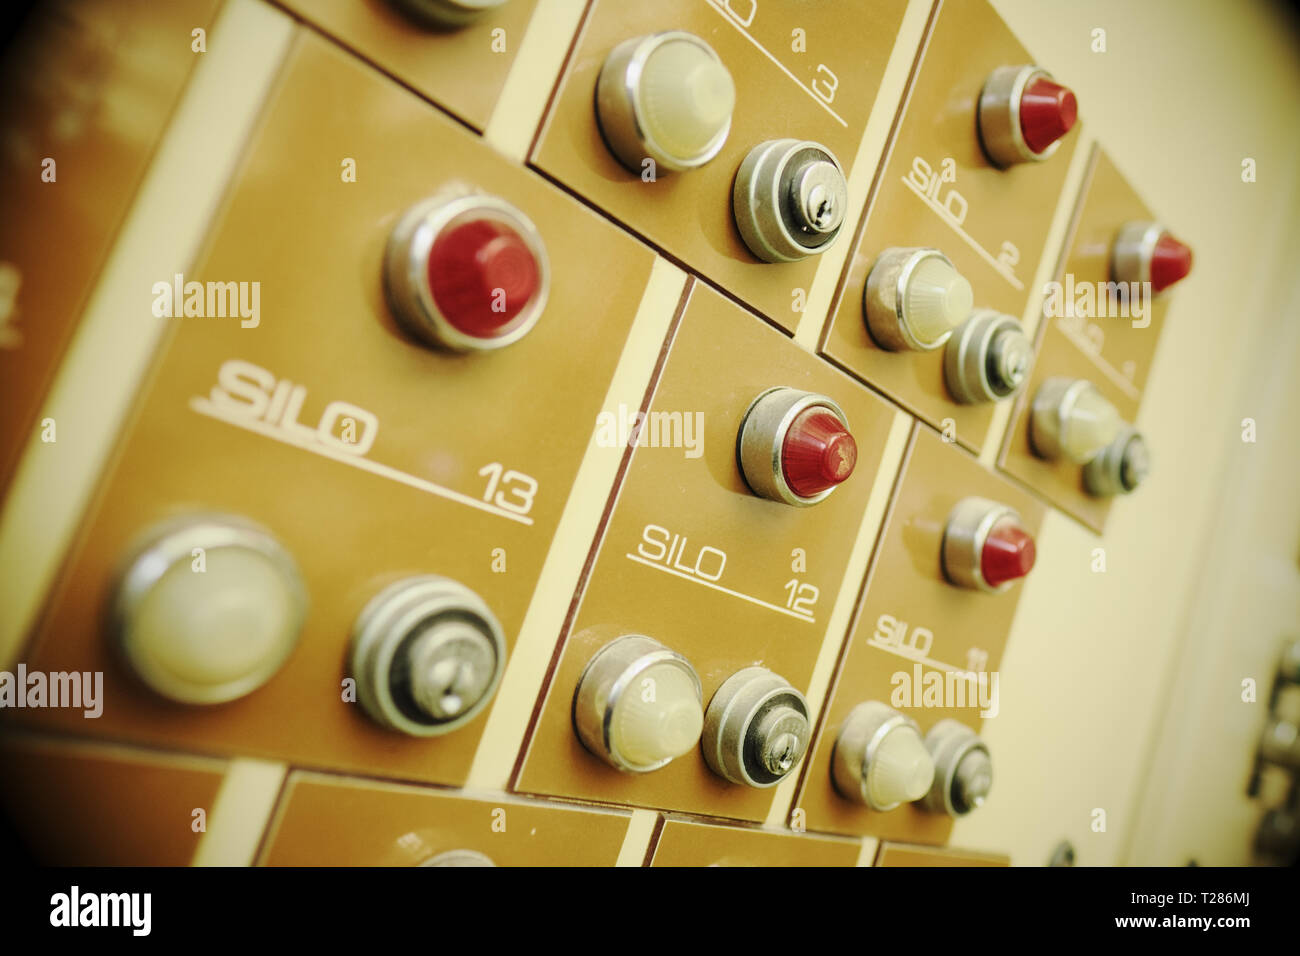 Berlin Germany - Control panel lights and buttons from the former brewery inside the Kindle art centre - Stock Image